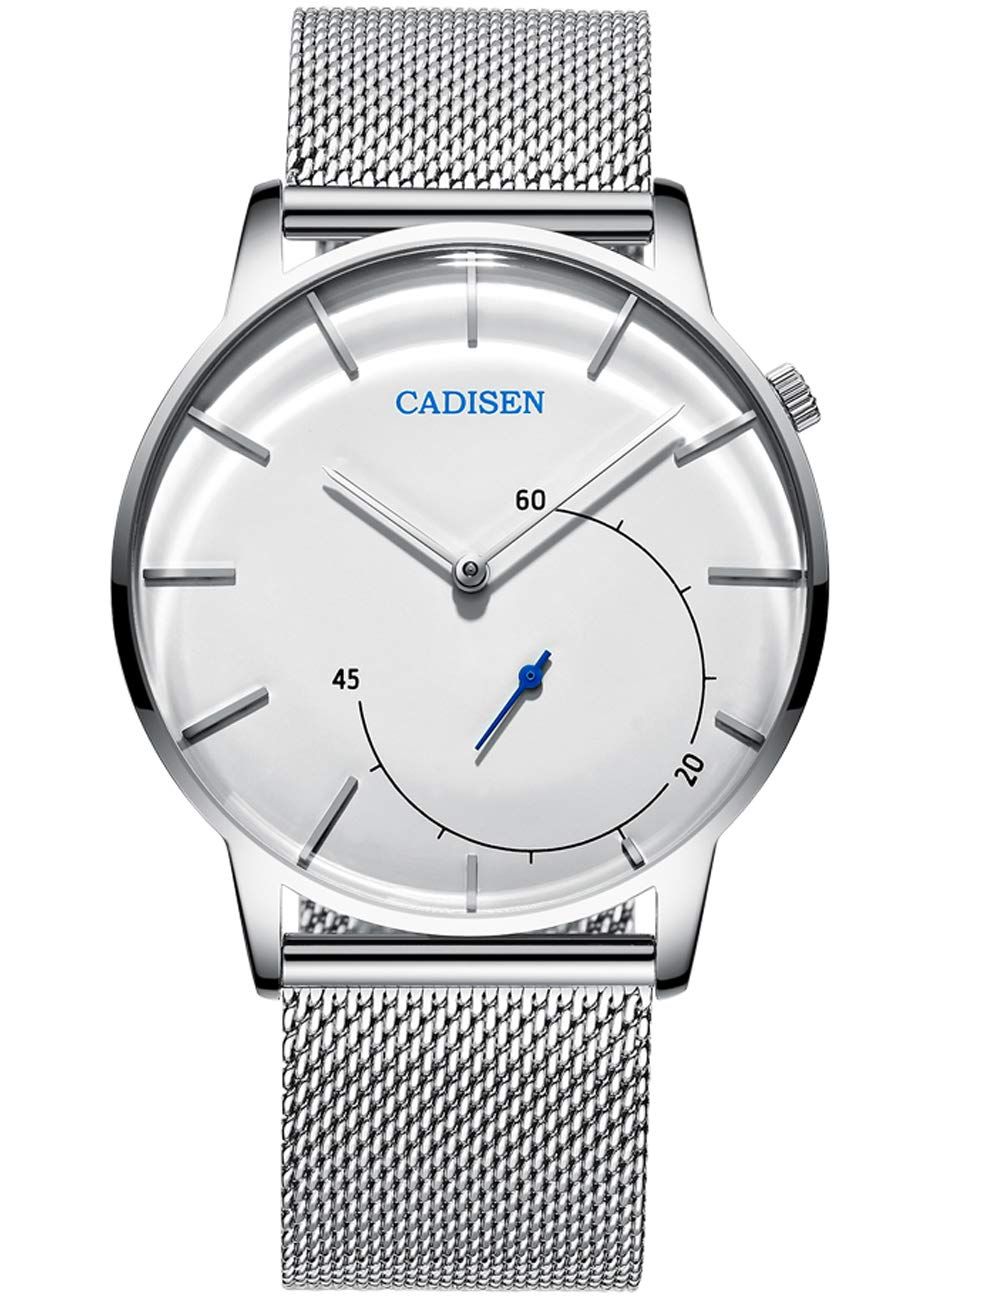 CADISEN ultra-thin simple semi-circular seconds design watch, stylish waterproof silver stainless steel quartz men's watch